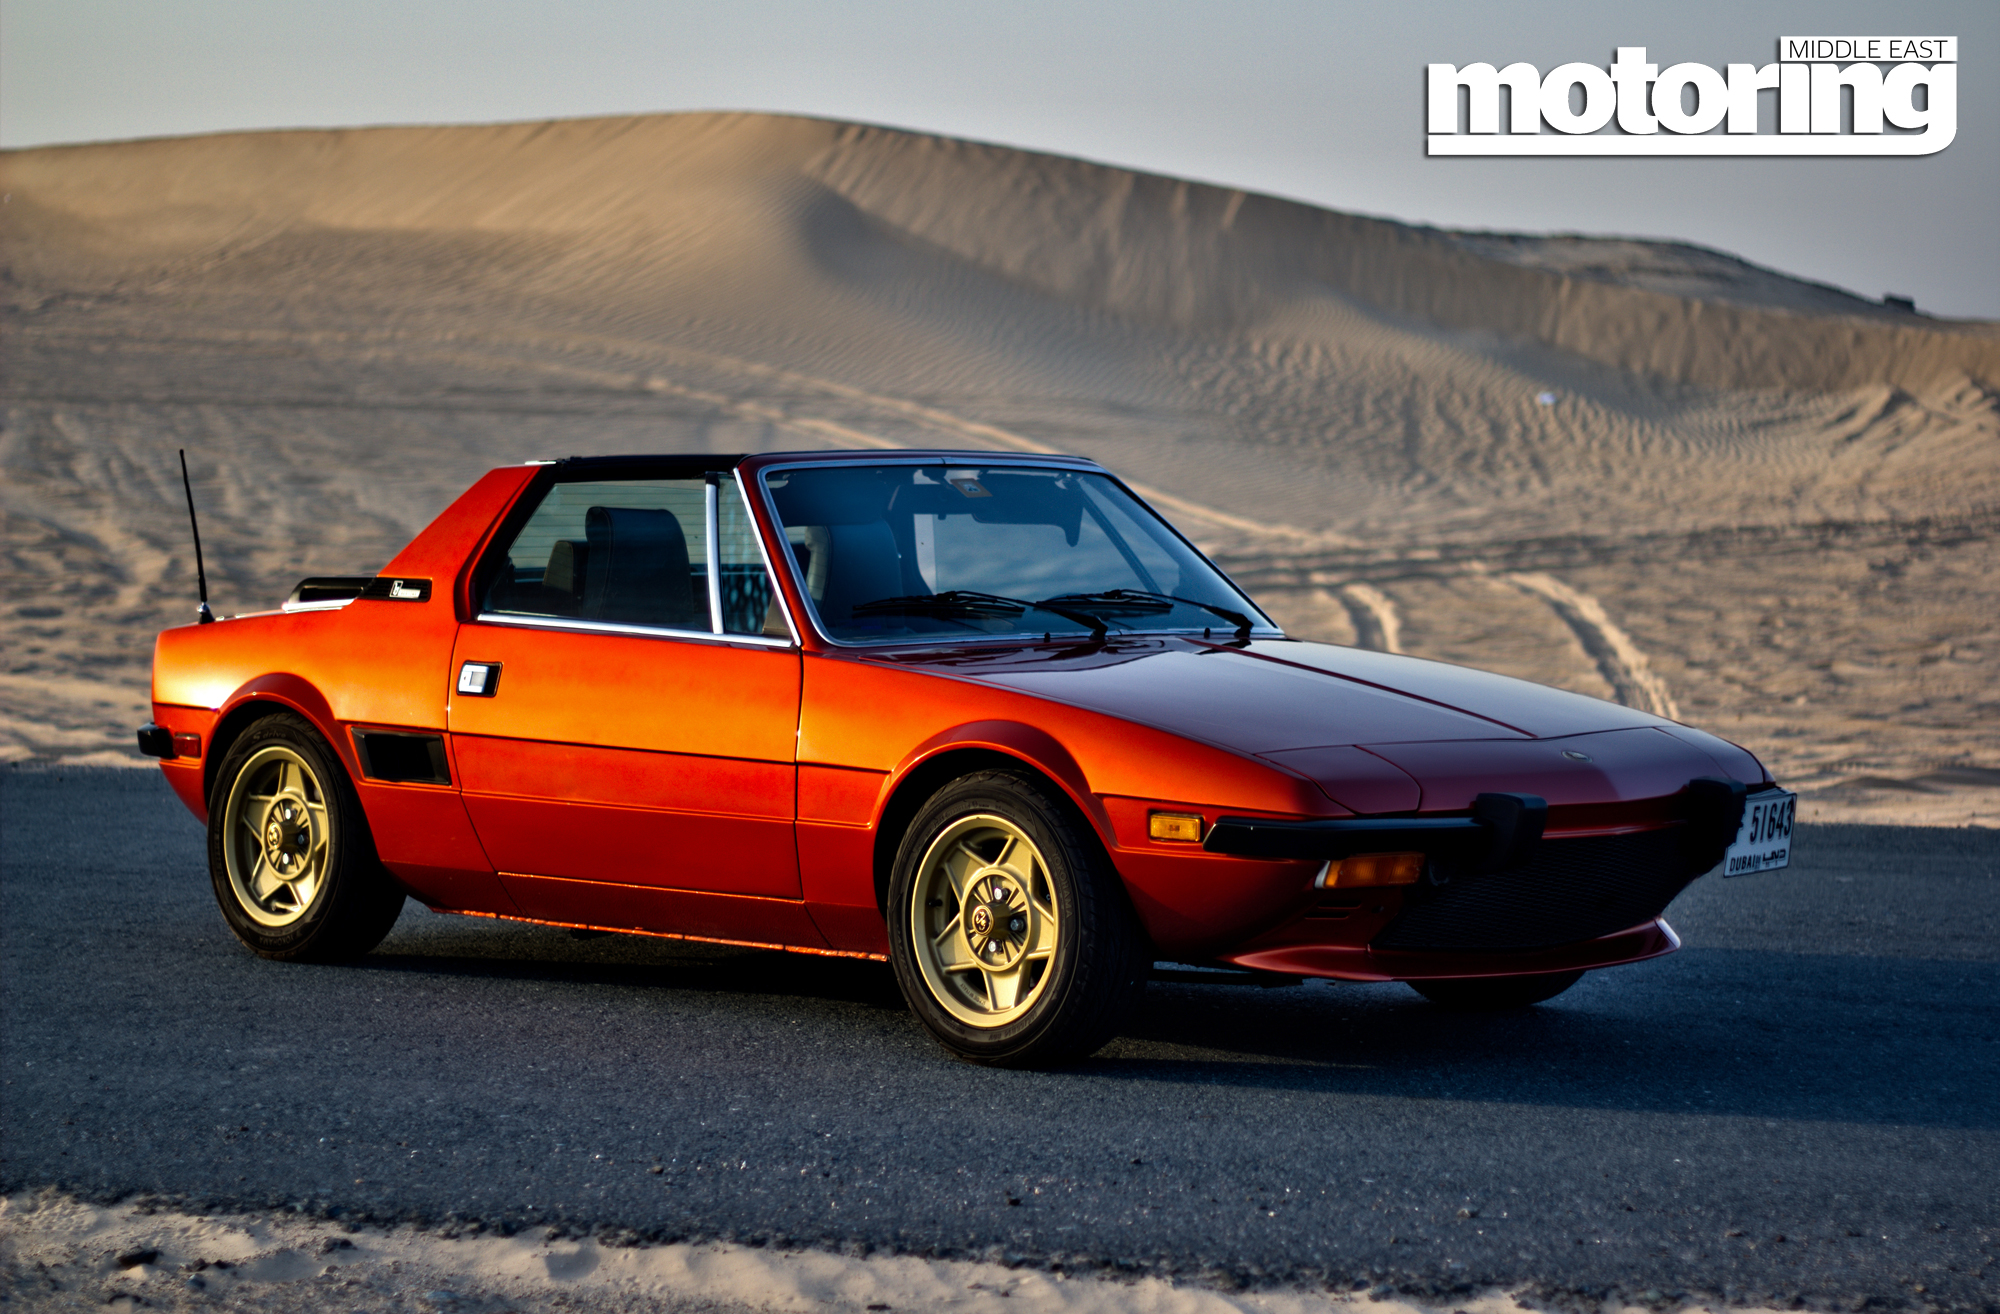 1980 Fiat X1 9 Motoring Middle East Car news Reviews